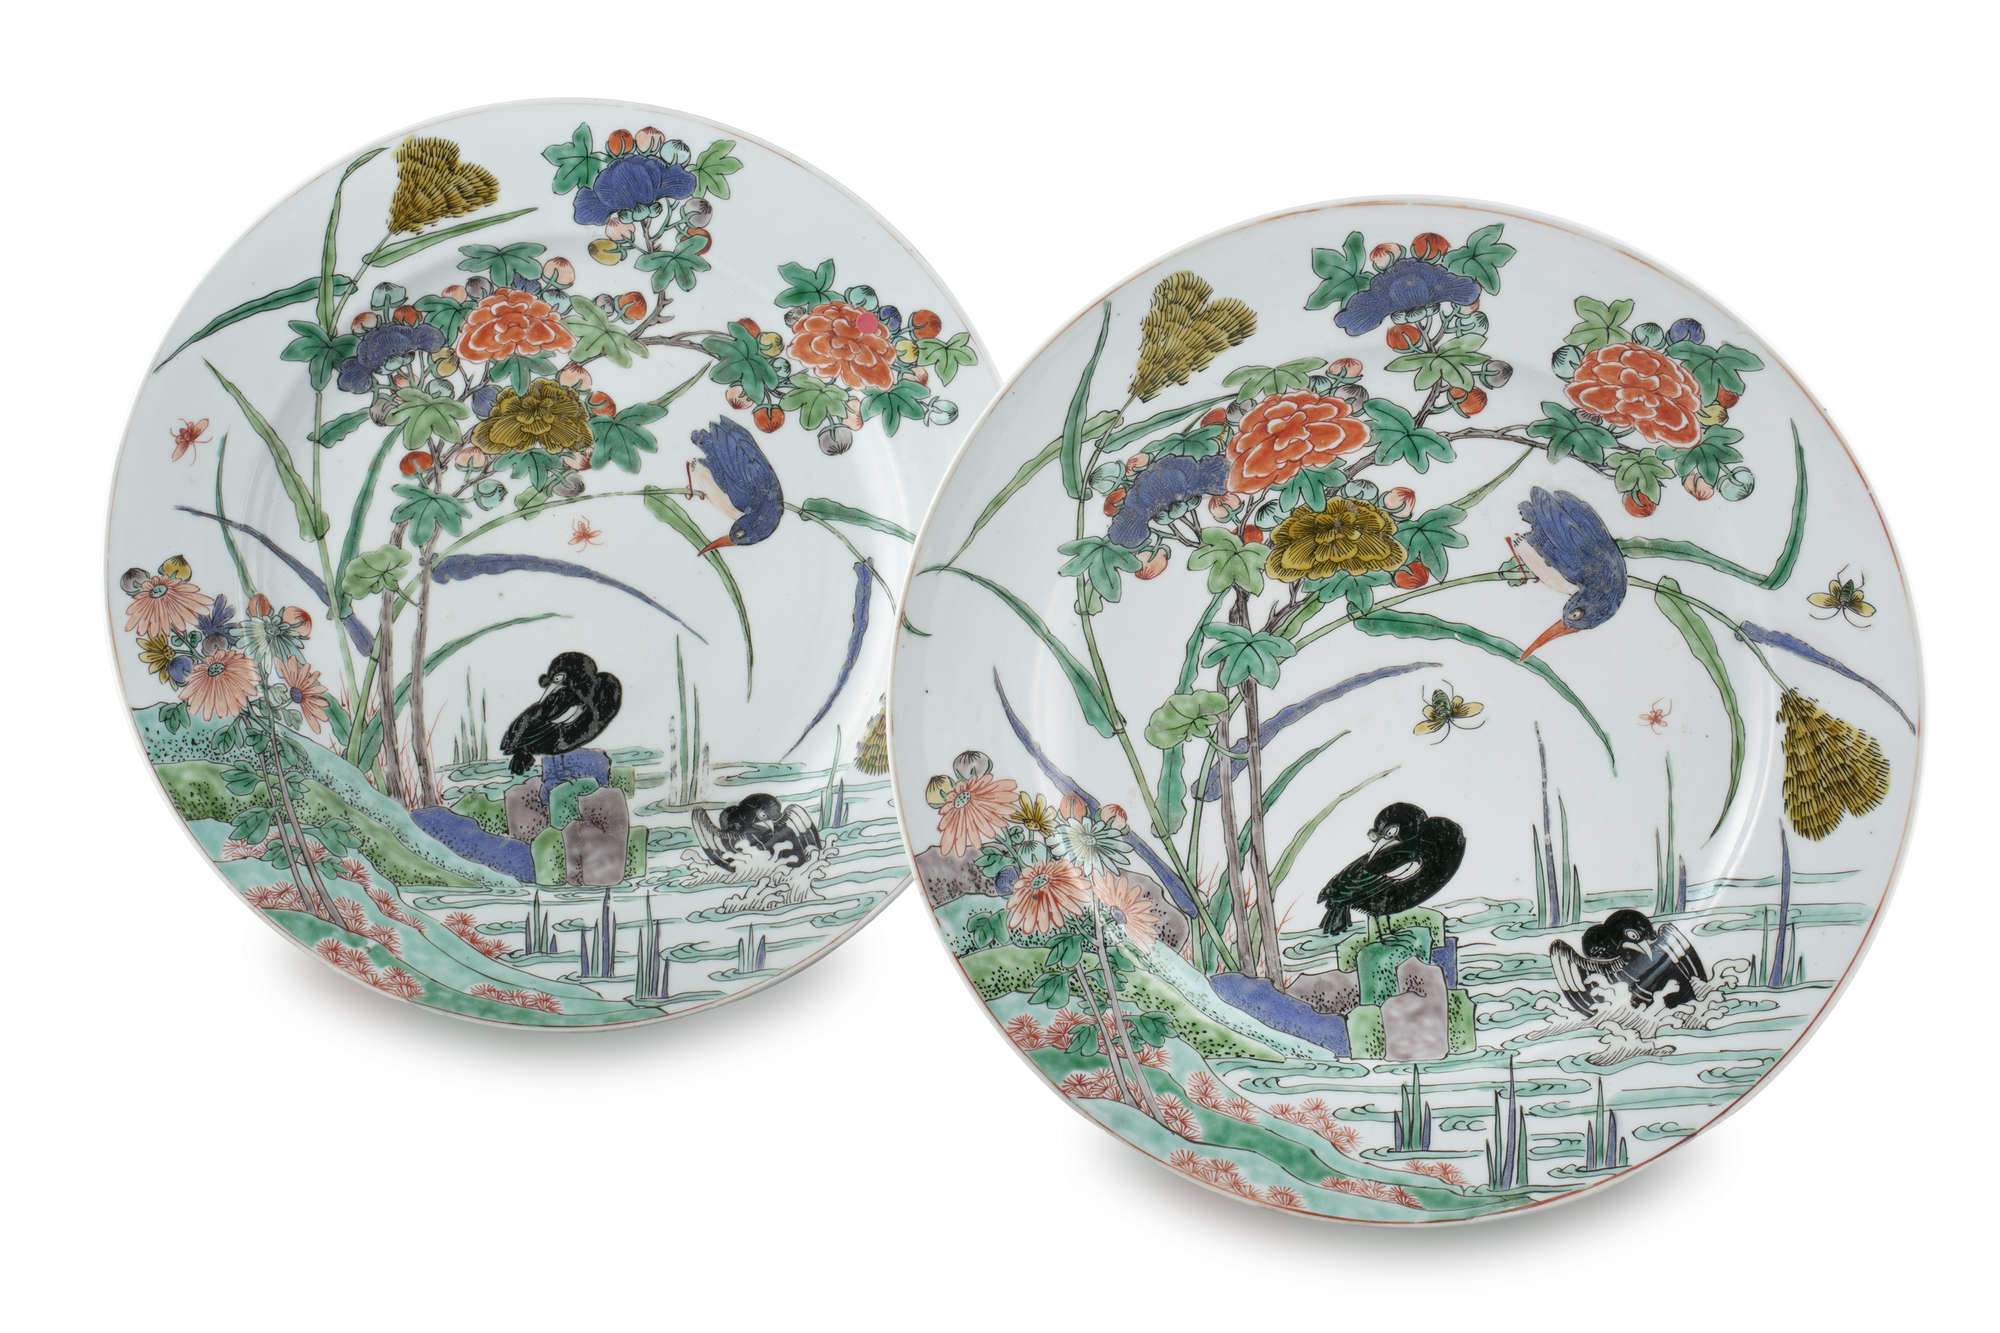 AN IMPORTANT PAIR OF FAMILLE VERTE 'FLYCATCHER AND MAGPIES' PORCELAIN SHALLOW DISHES